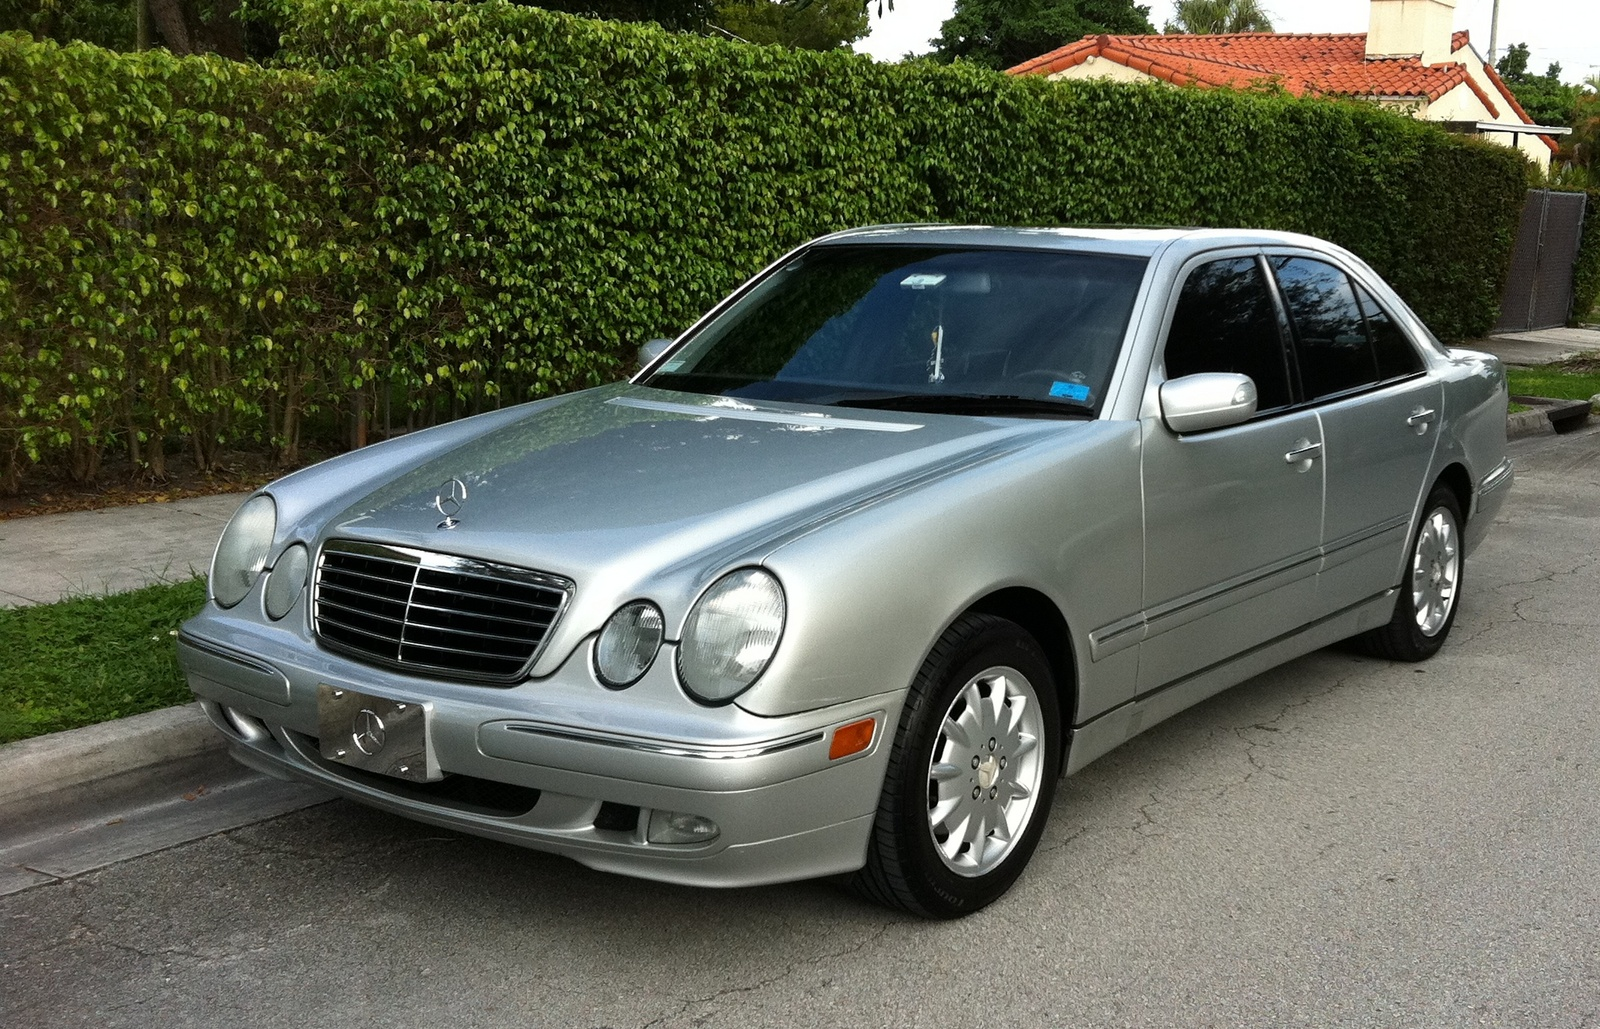 2001 mercedes benz e class pictures cargurus for 2004 mercedes benz e320 review